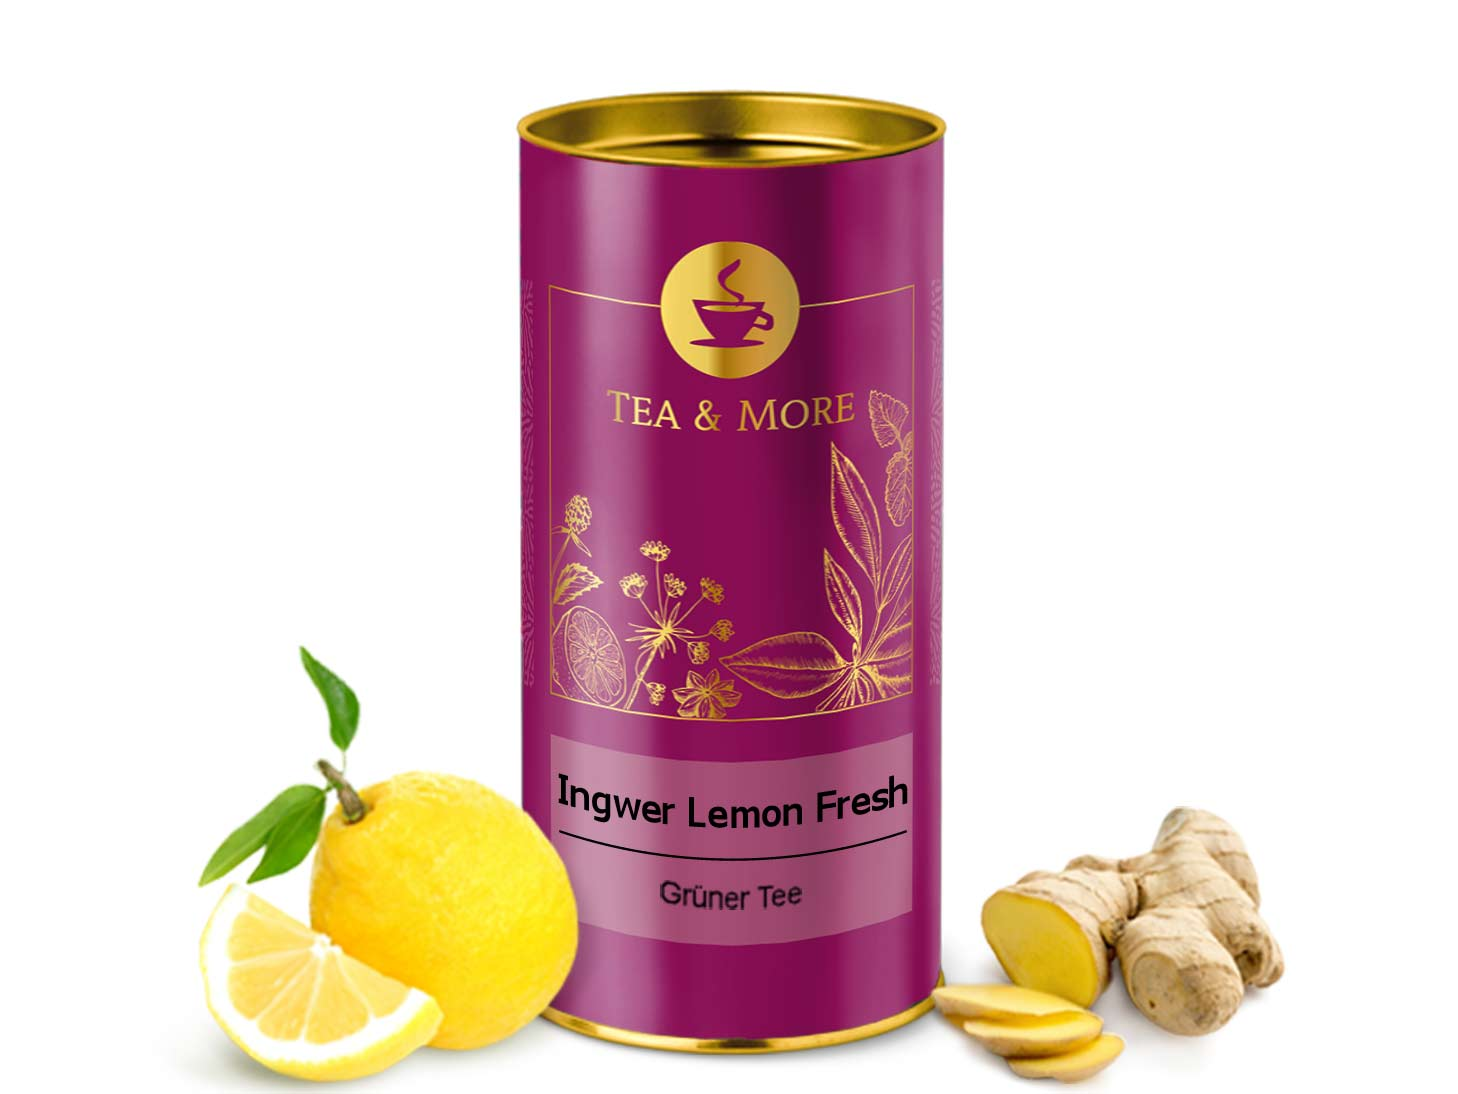 Ingwer Lemon fresh